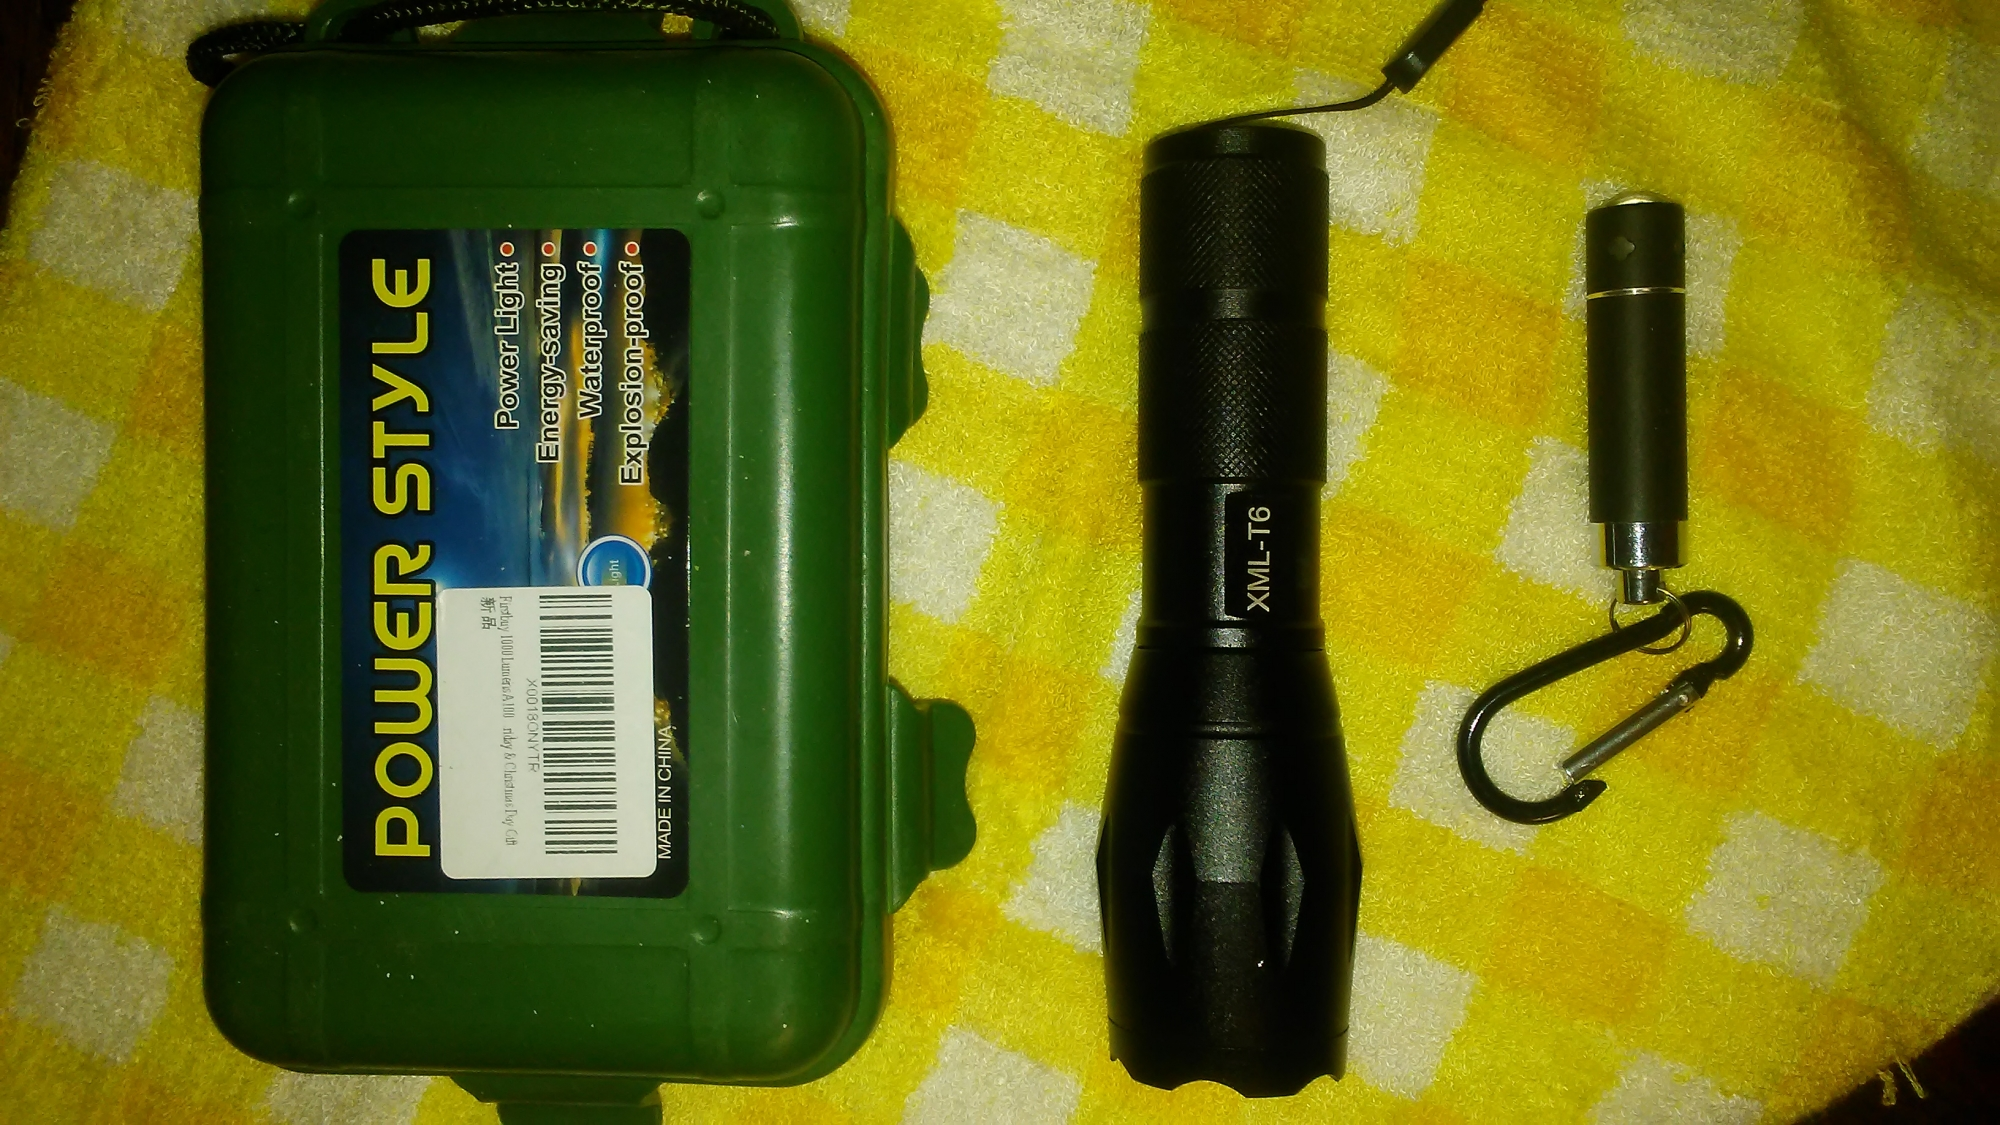 Very bight and durable flashlight